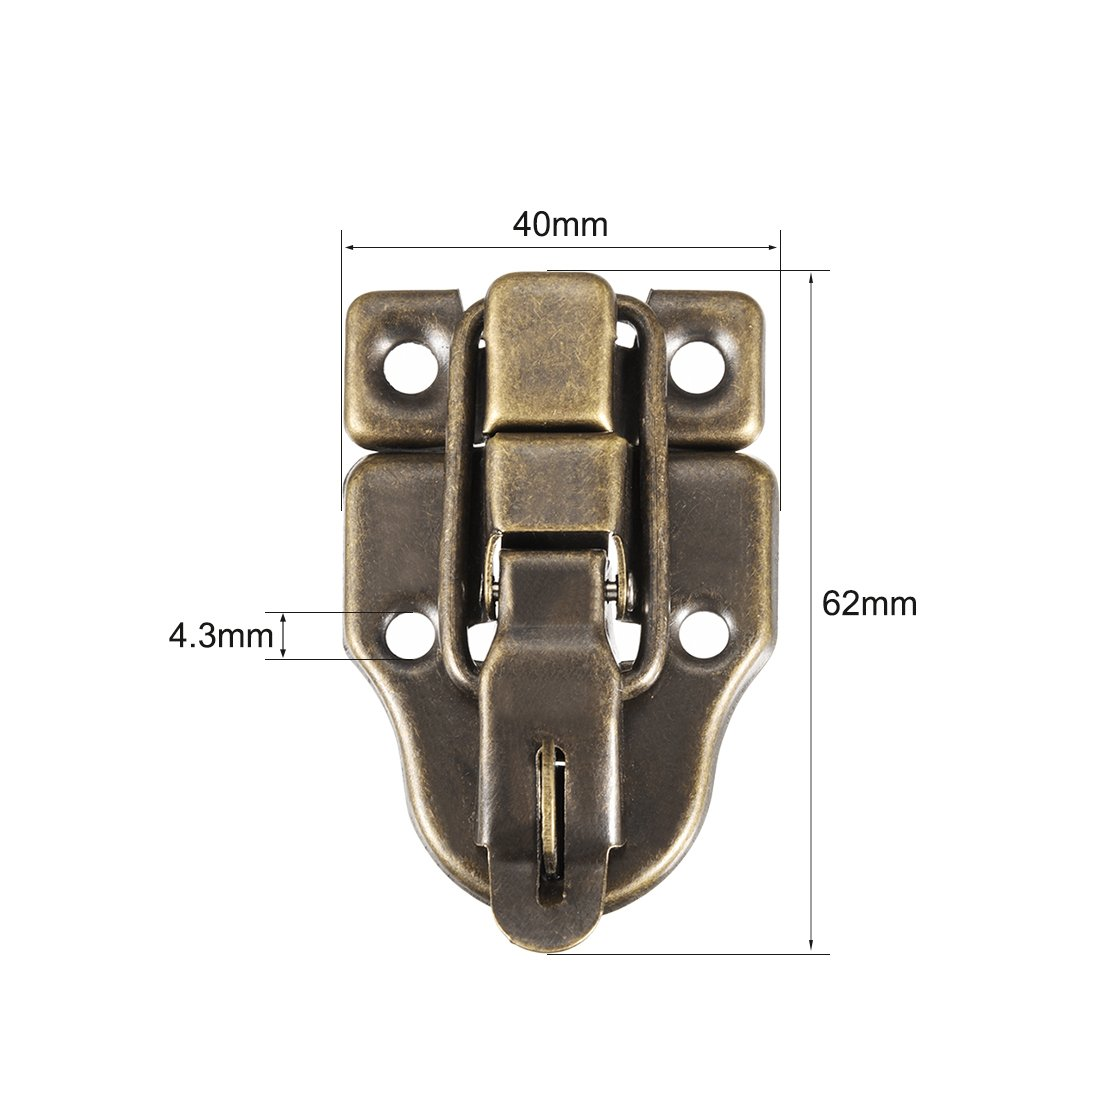 62mm x 40mm Silberton Dekorative Haspe Schmuck Holzkiste Fang DE de sourcing map 5Stk Box Riegel